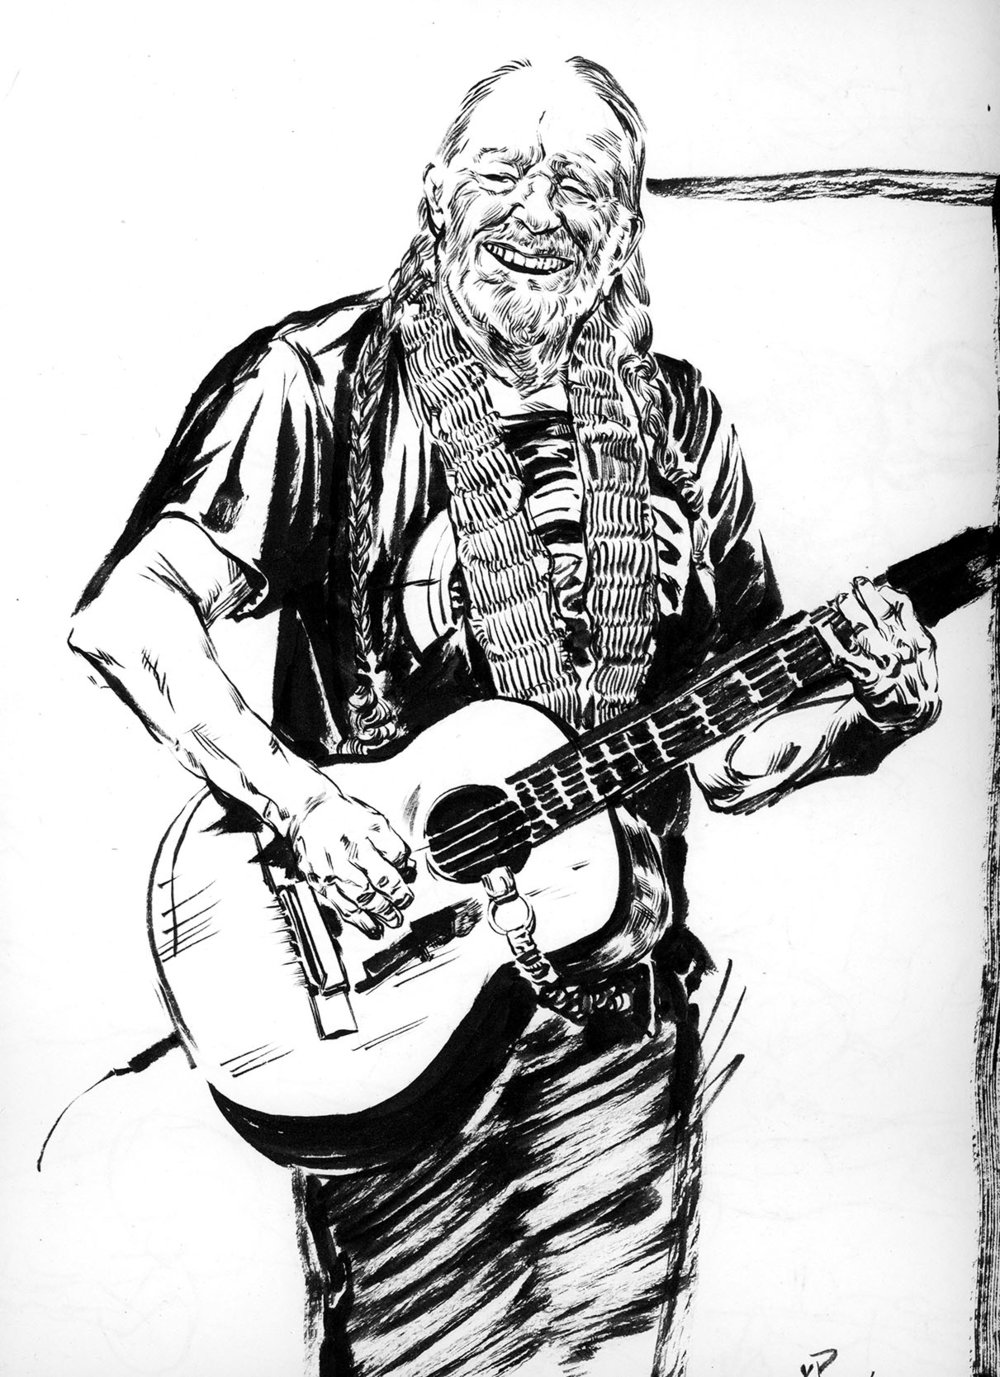 Willie_Nelson_sketch.jpg